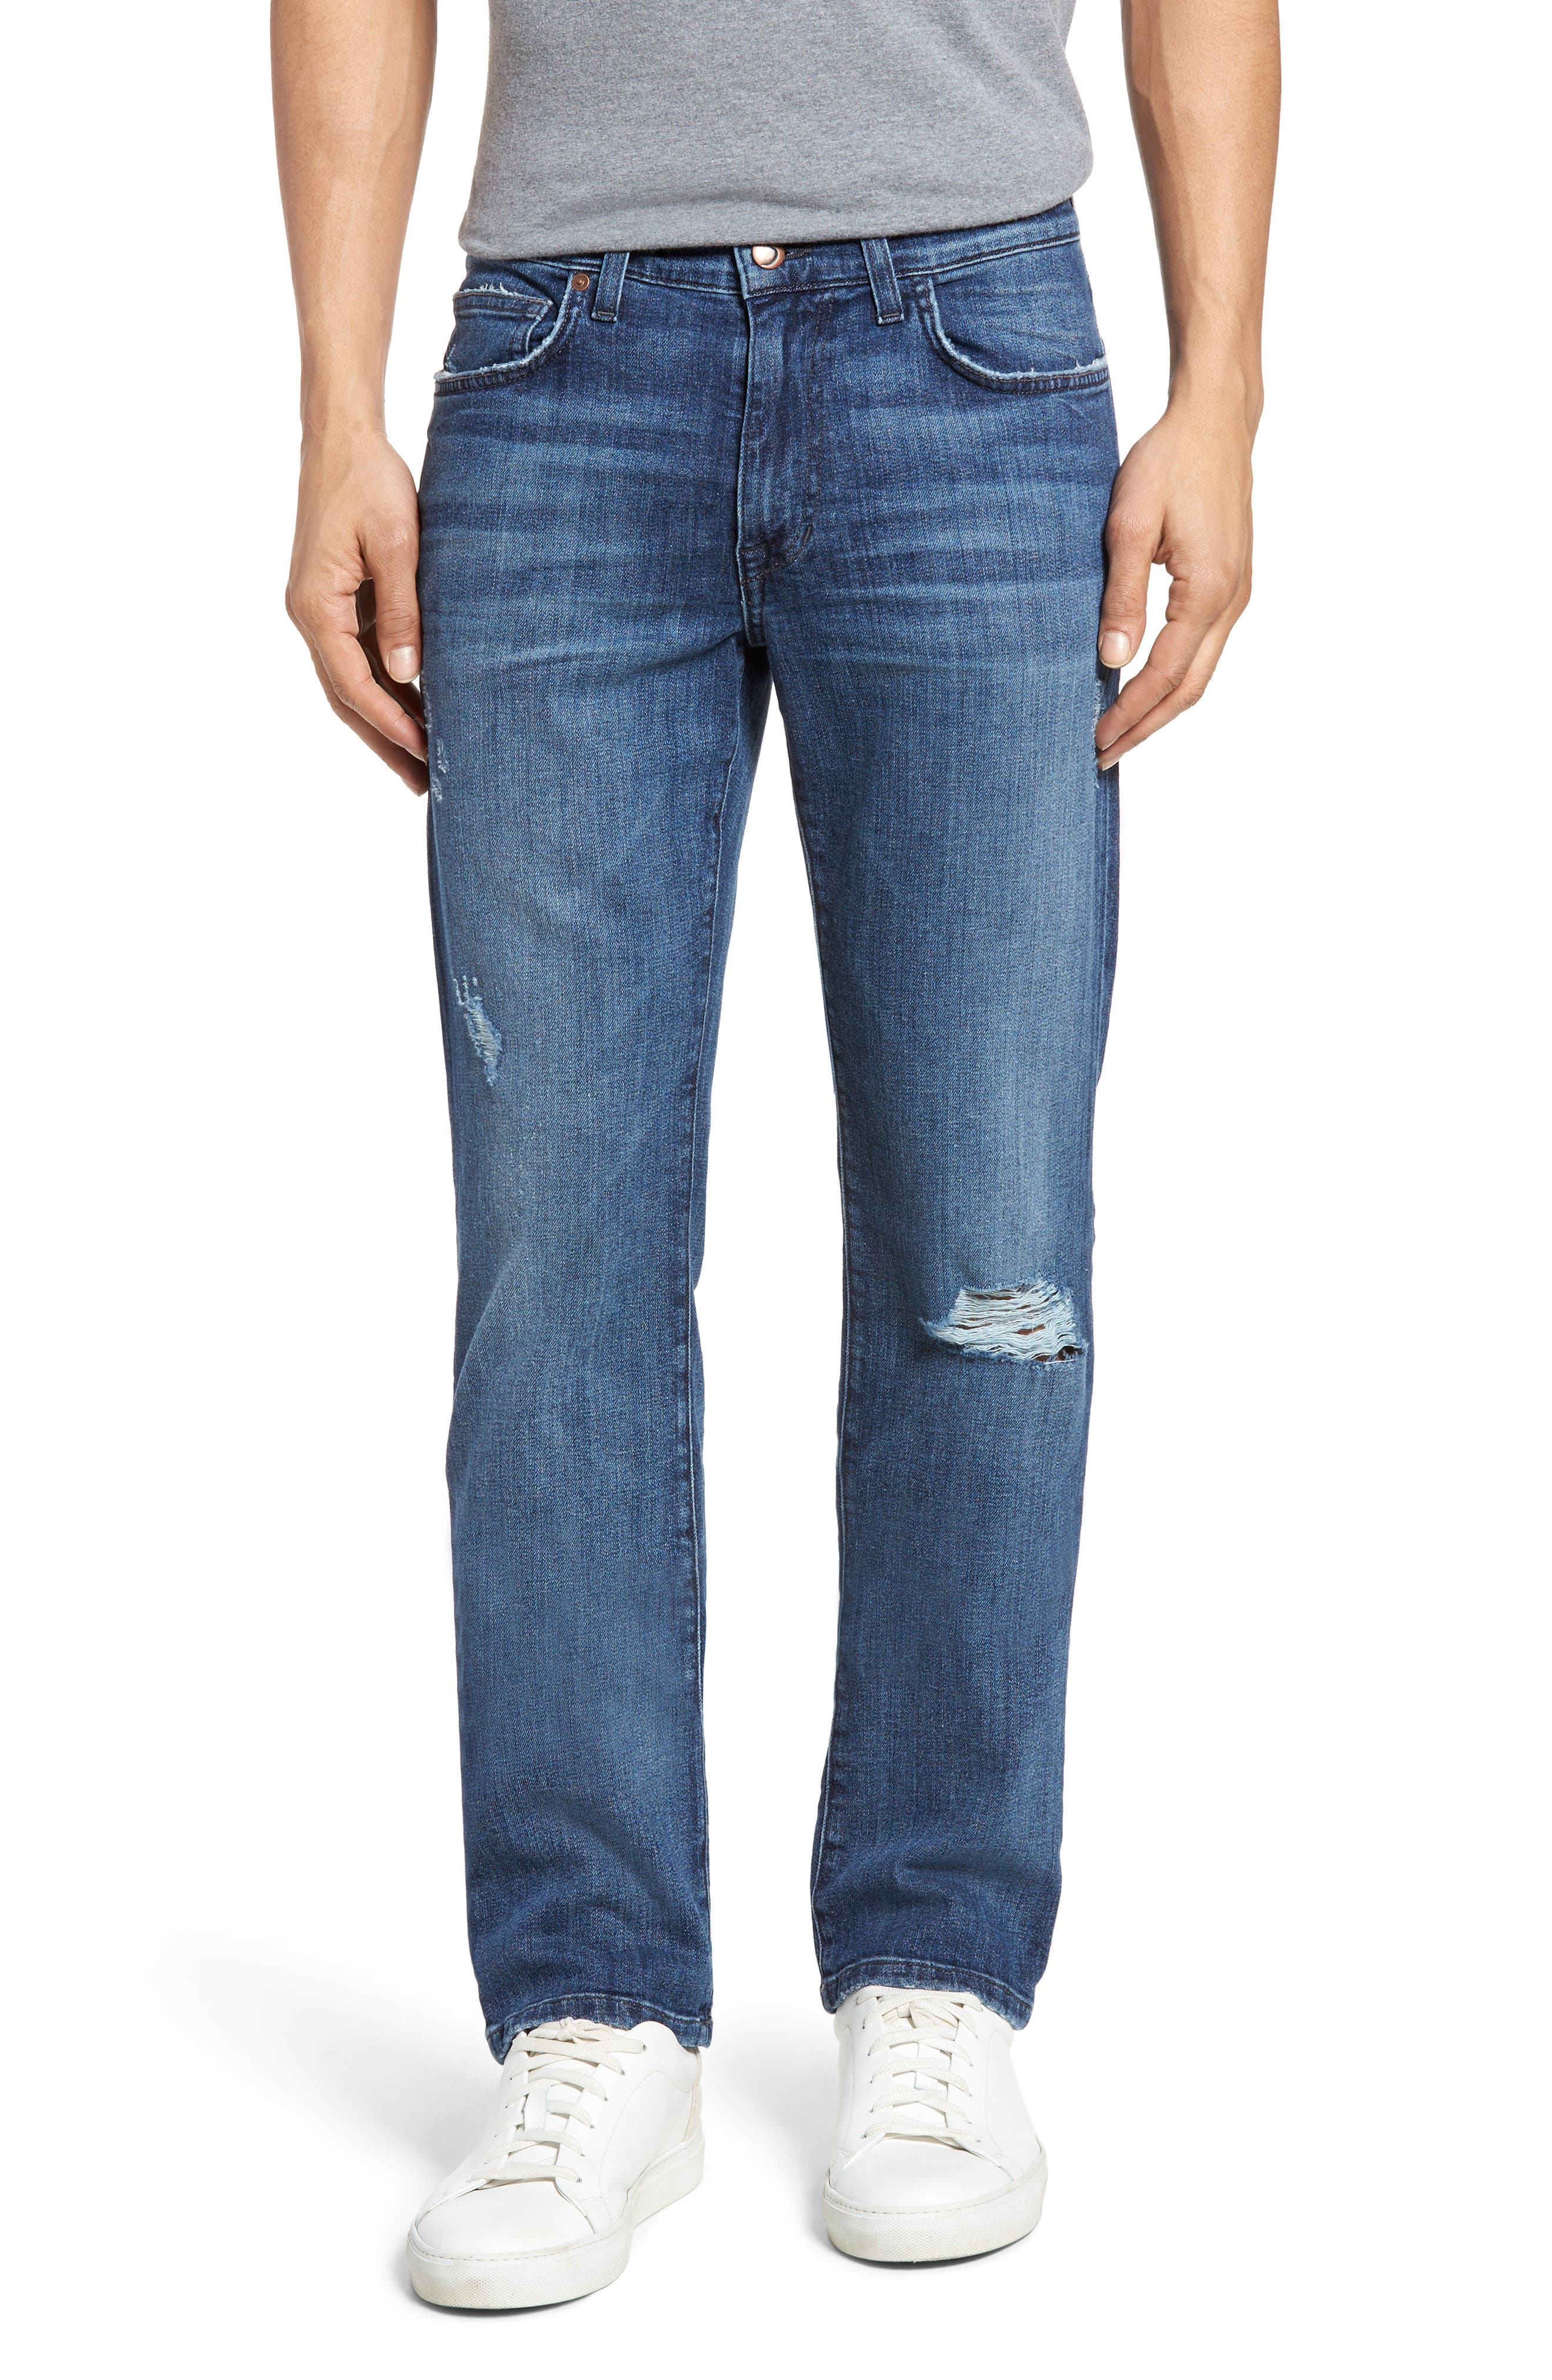 Brixton Slim Straight Leg Jeans,                         Main,                         color, Theron